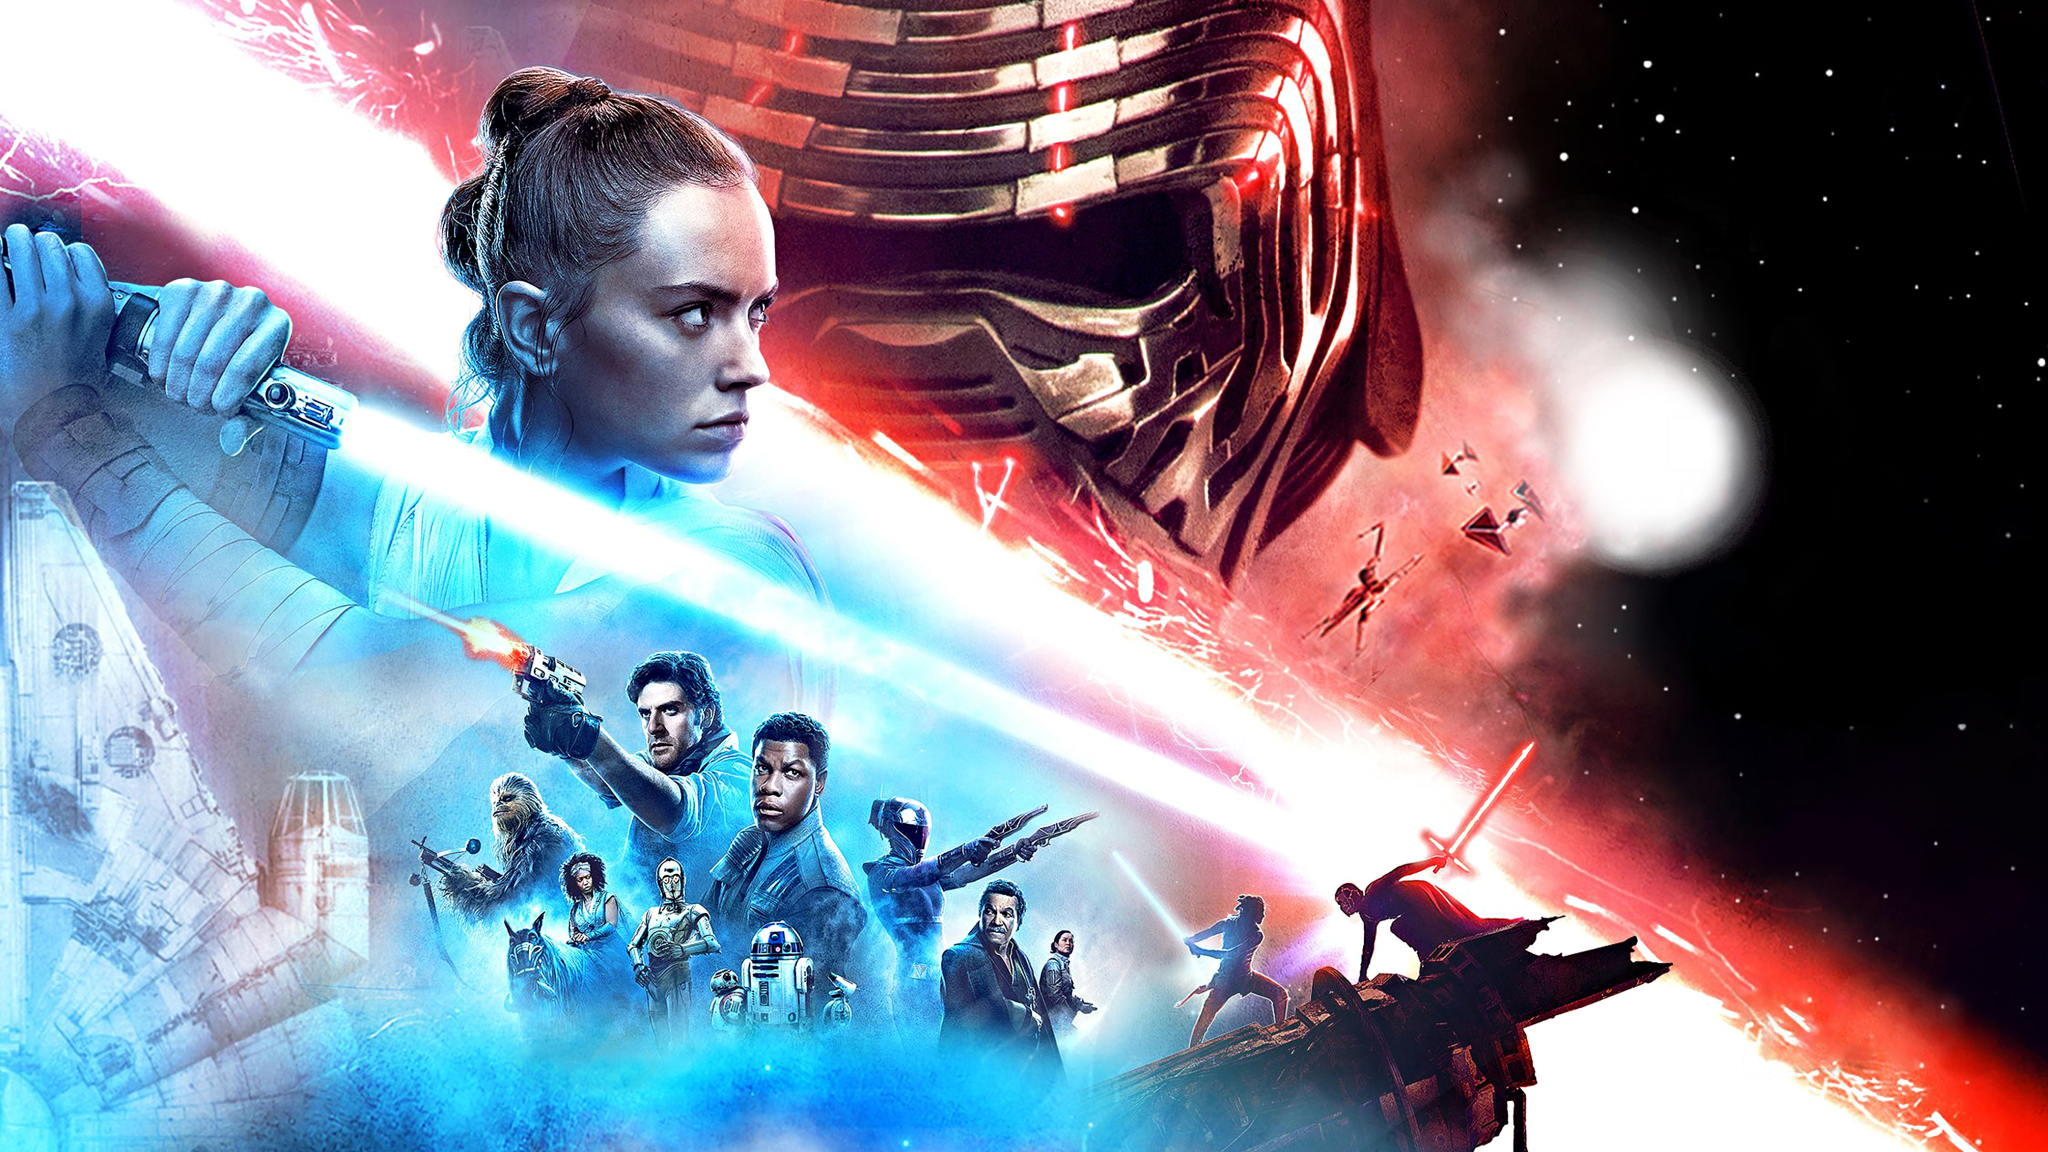 2048x1152 Star Wars 9 Banner 4k 2048x1152 Resolution